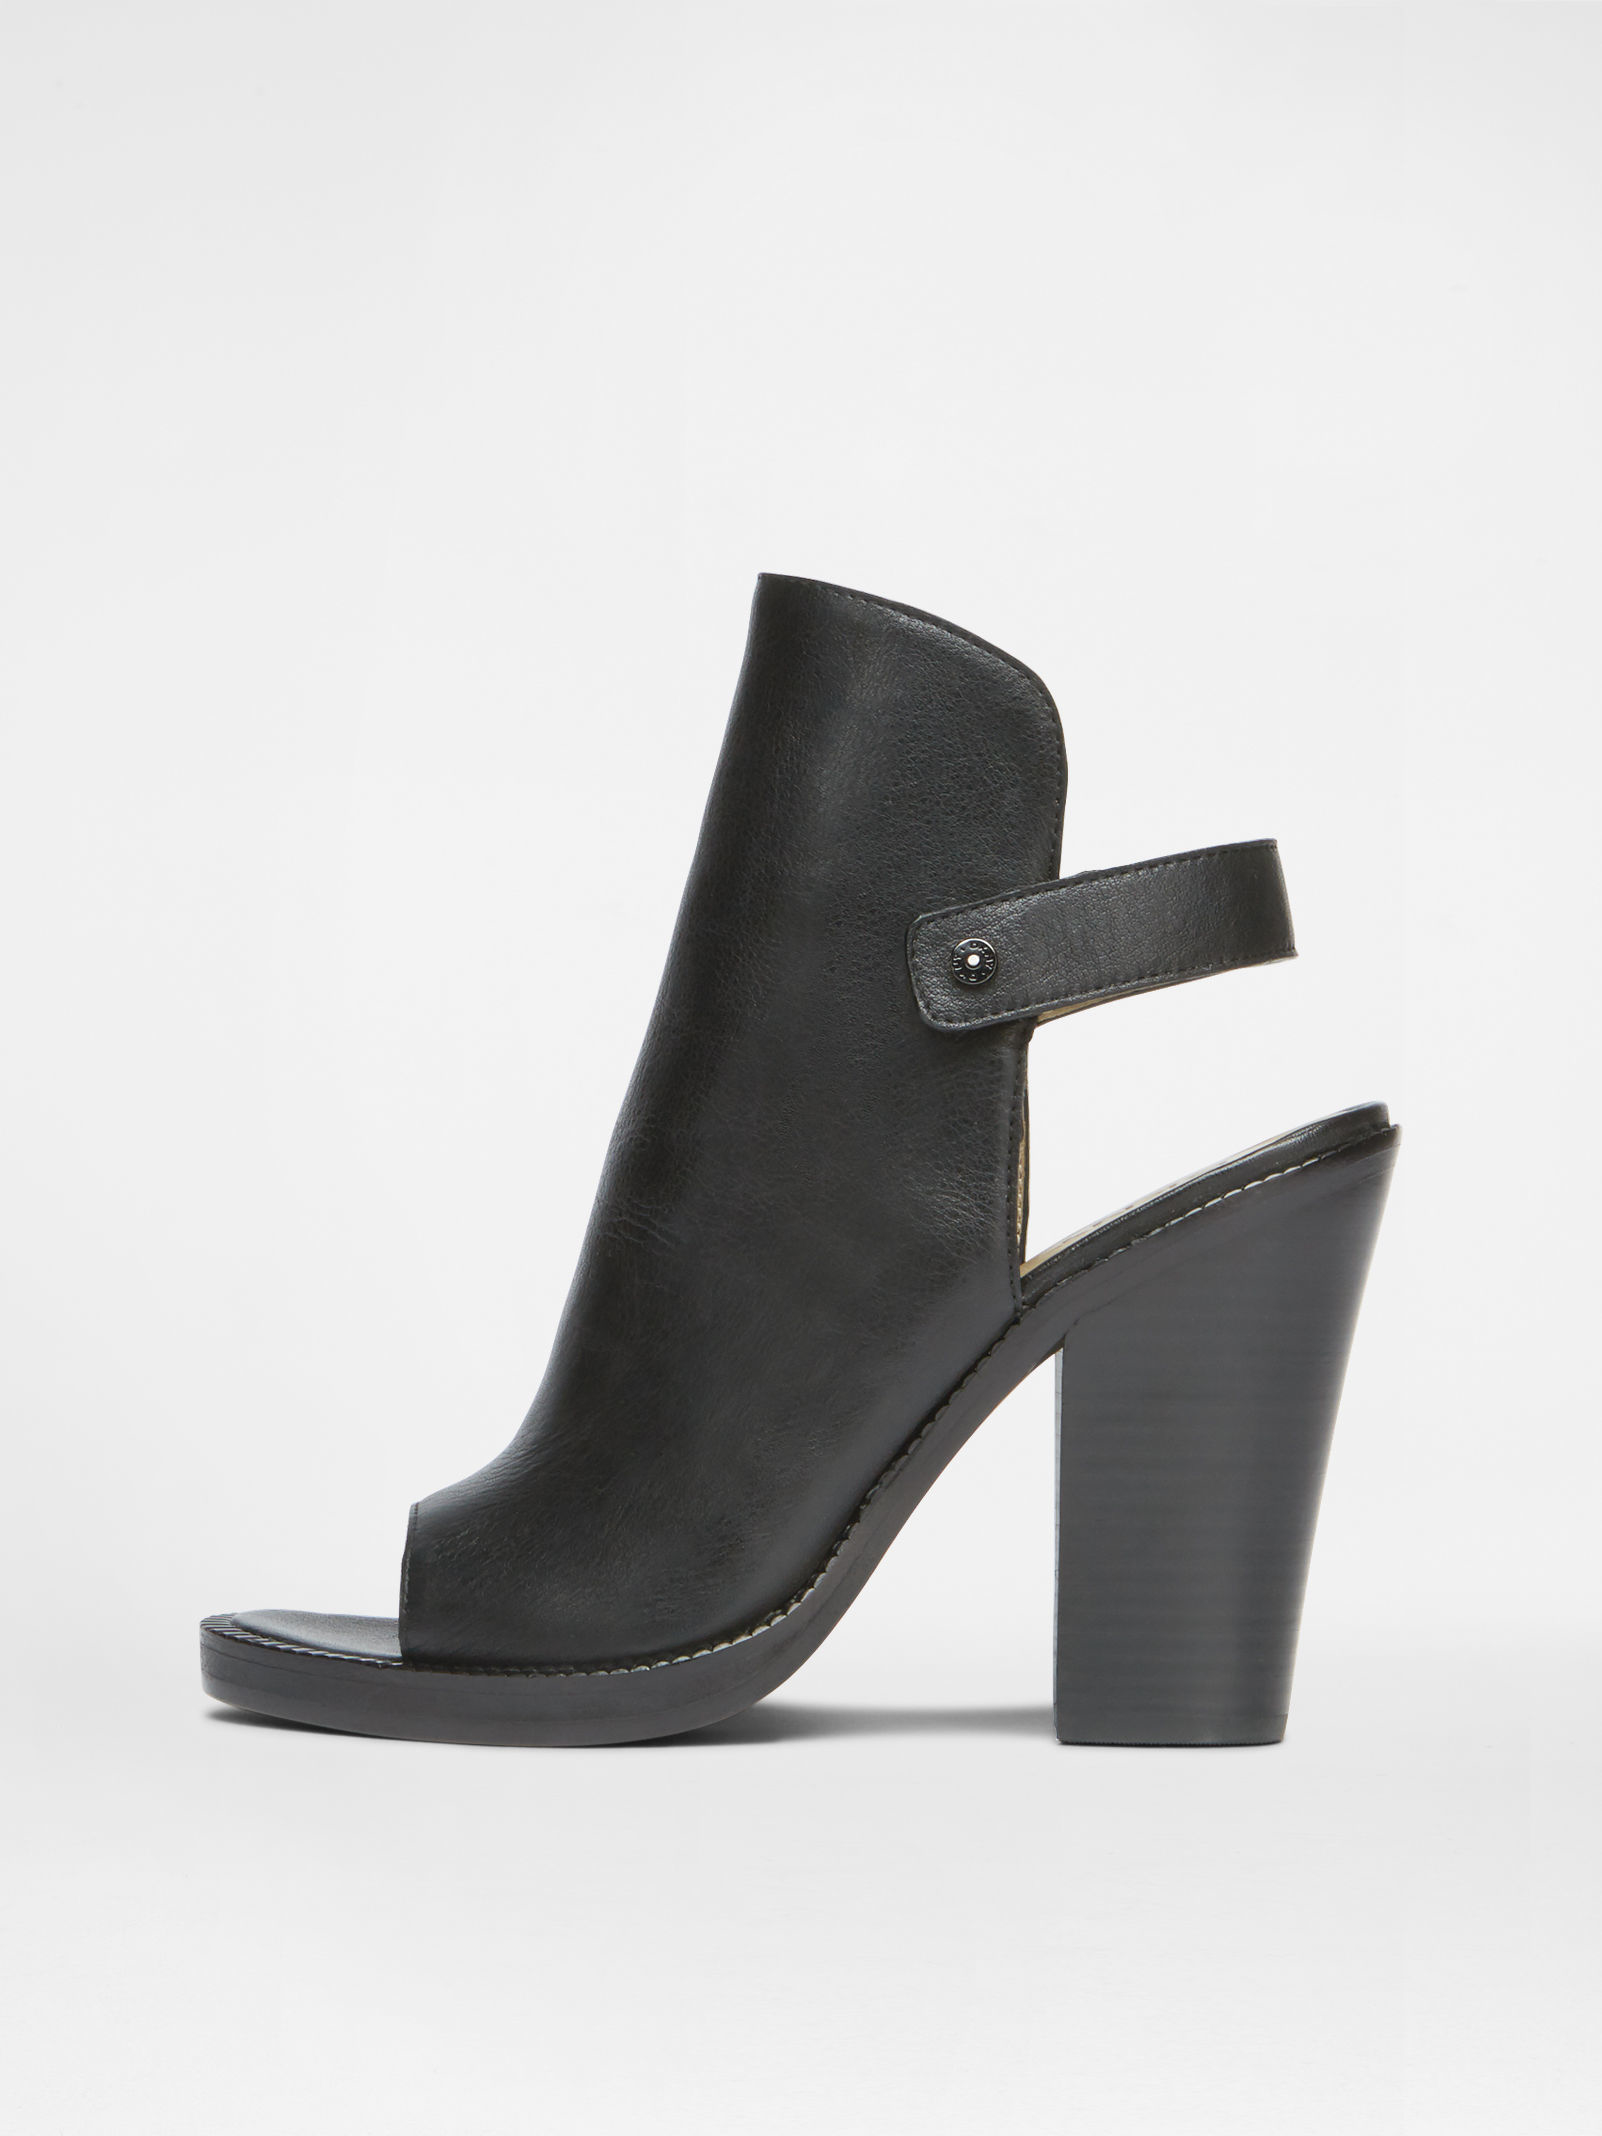 4ebb48a610 DKNY Whalen Welted Sandal in Black - Lyst